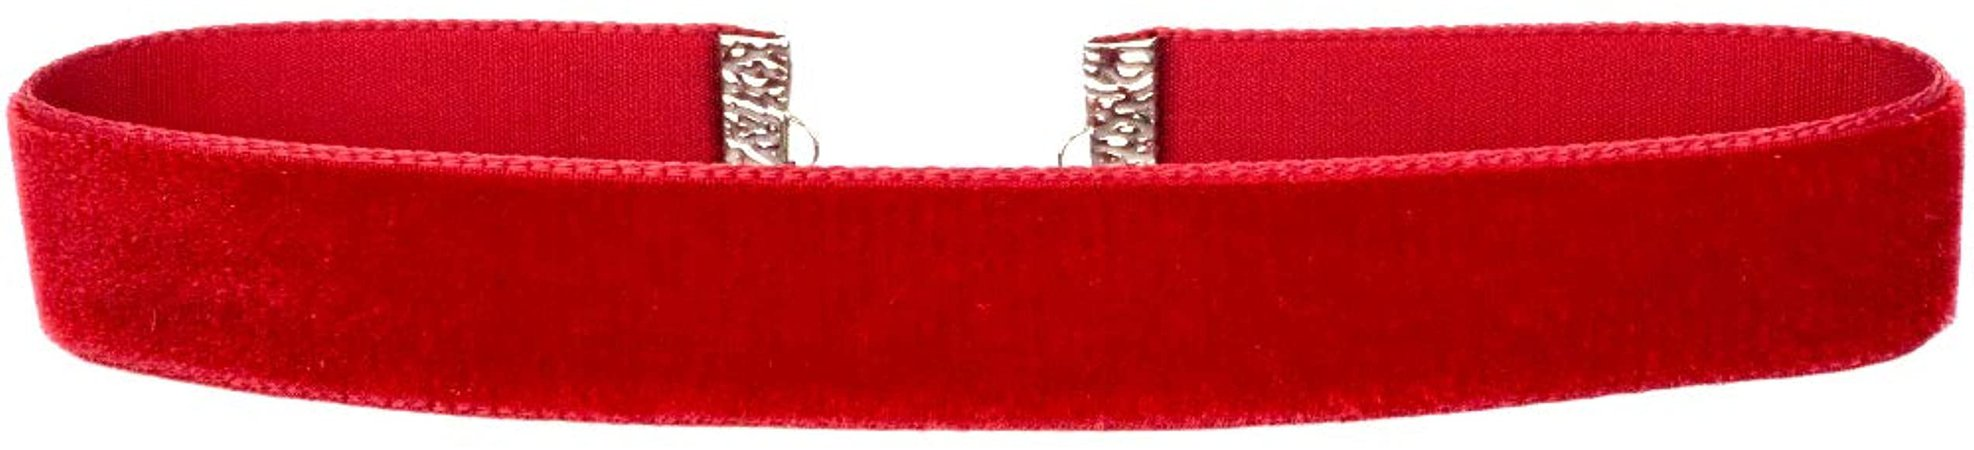 "Amazon.com: Twilight's Fancy 5/8"" 16mm Plain Velvet Ribbon Choker Necklace (Red, Large): Jewelry"